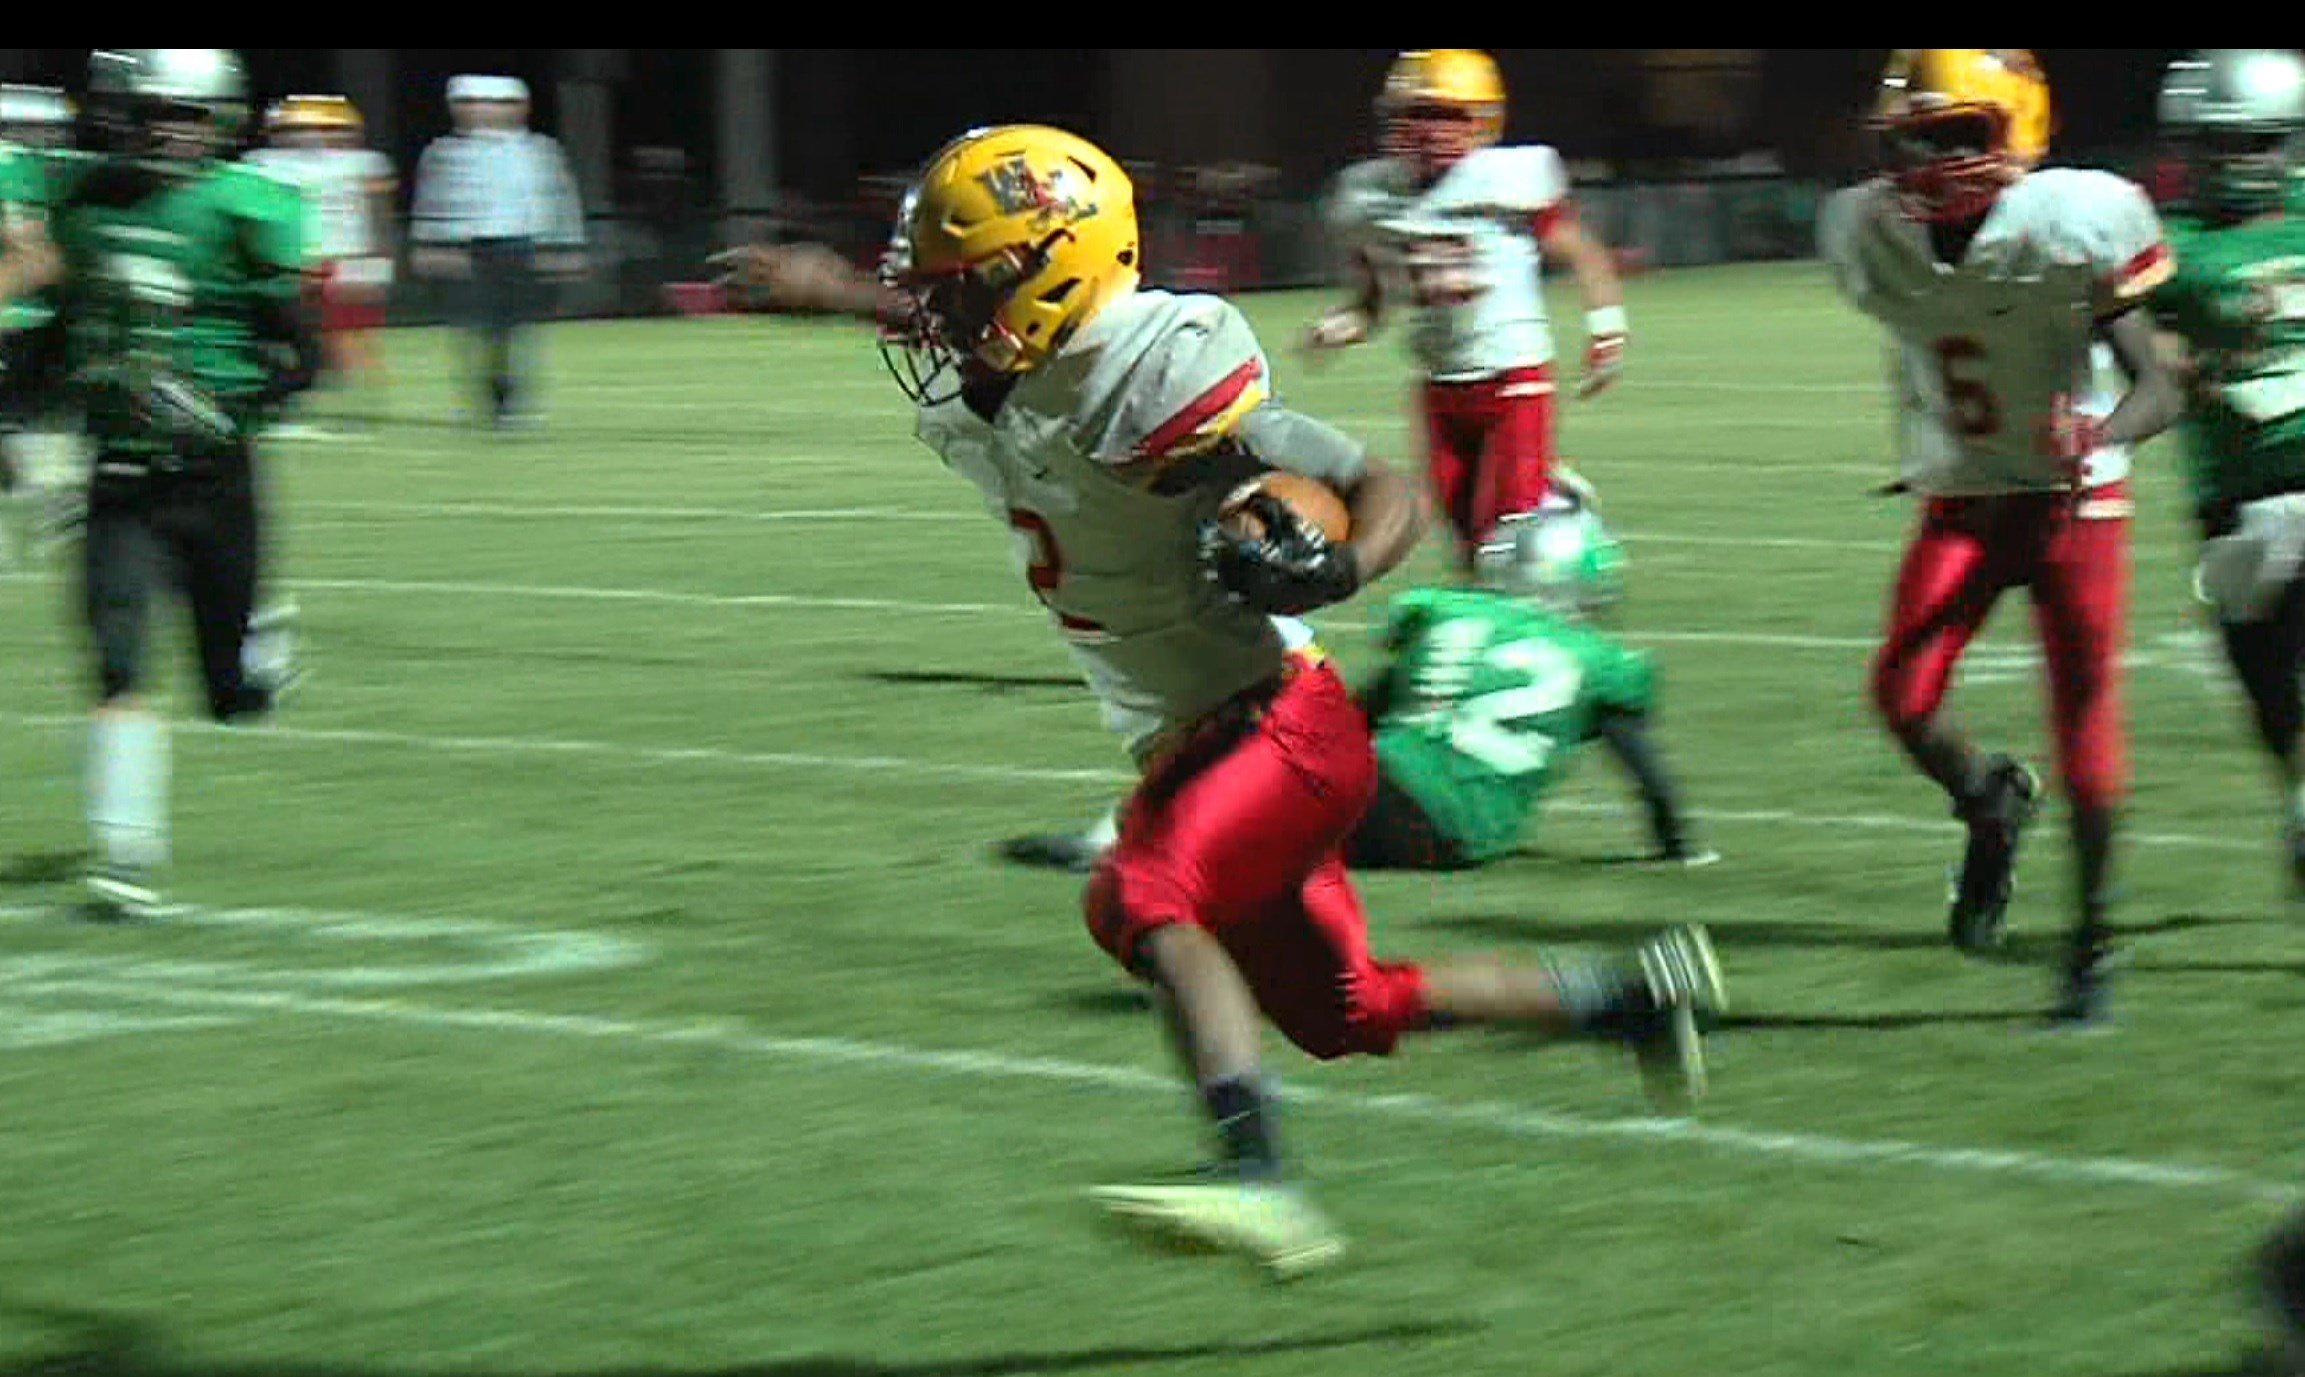 Warrensburg-Latham's Diondre Lewis has settled into his role as running back after playing receiver last season.